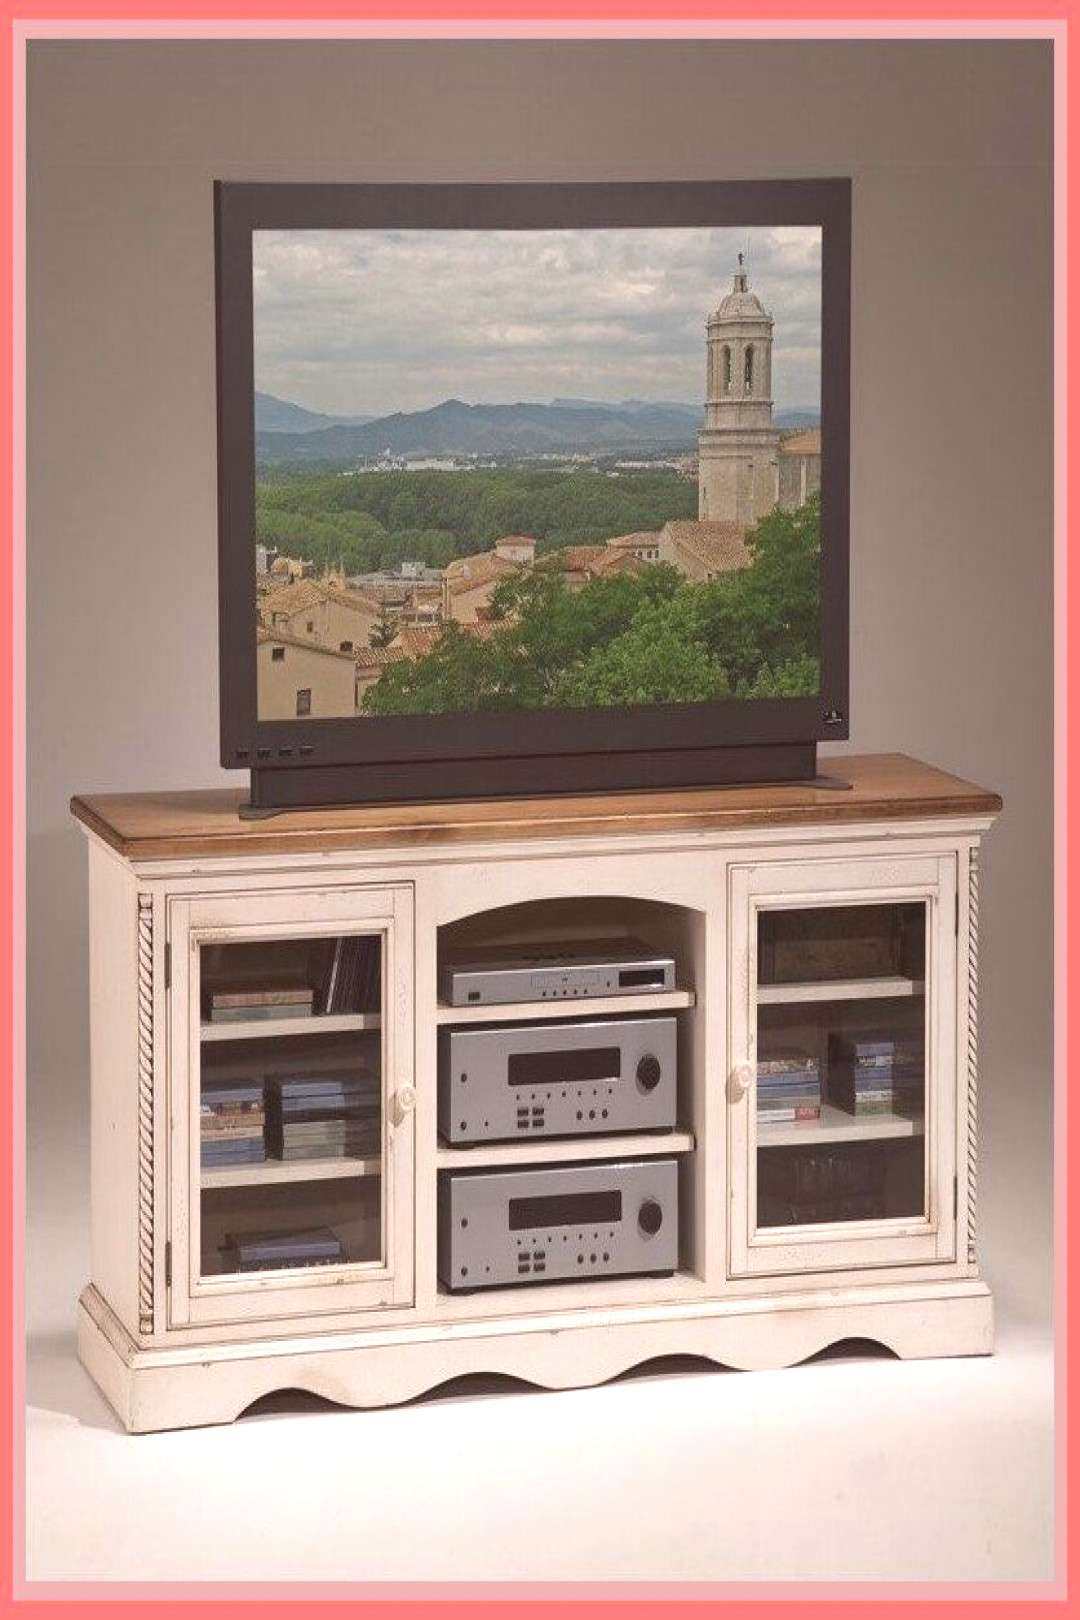 41 reference of tv stand Small retro tv stand Small retro-#tv Please Click Link To Find More Refere